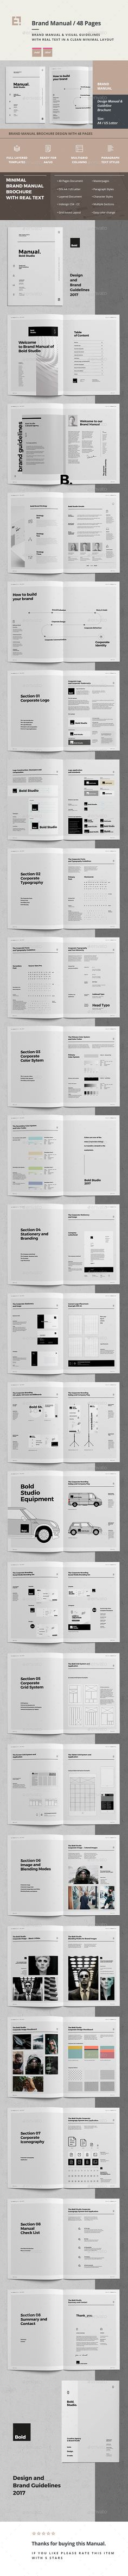 Brand Manual Template InDesign INDD